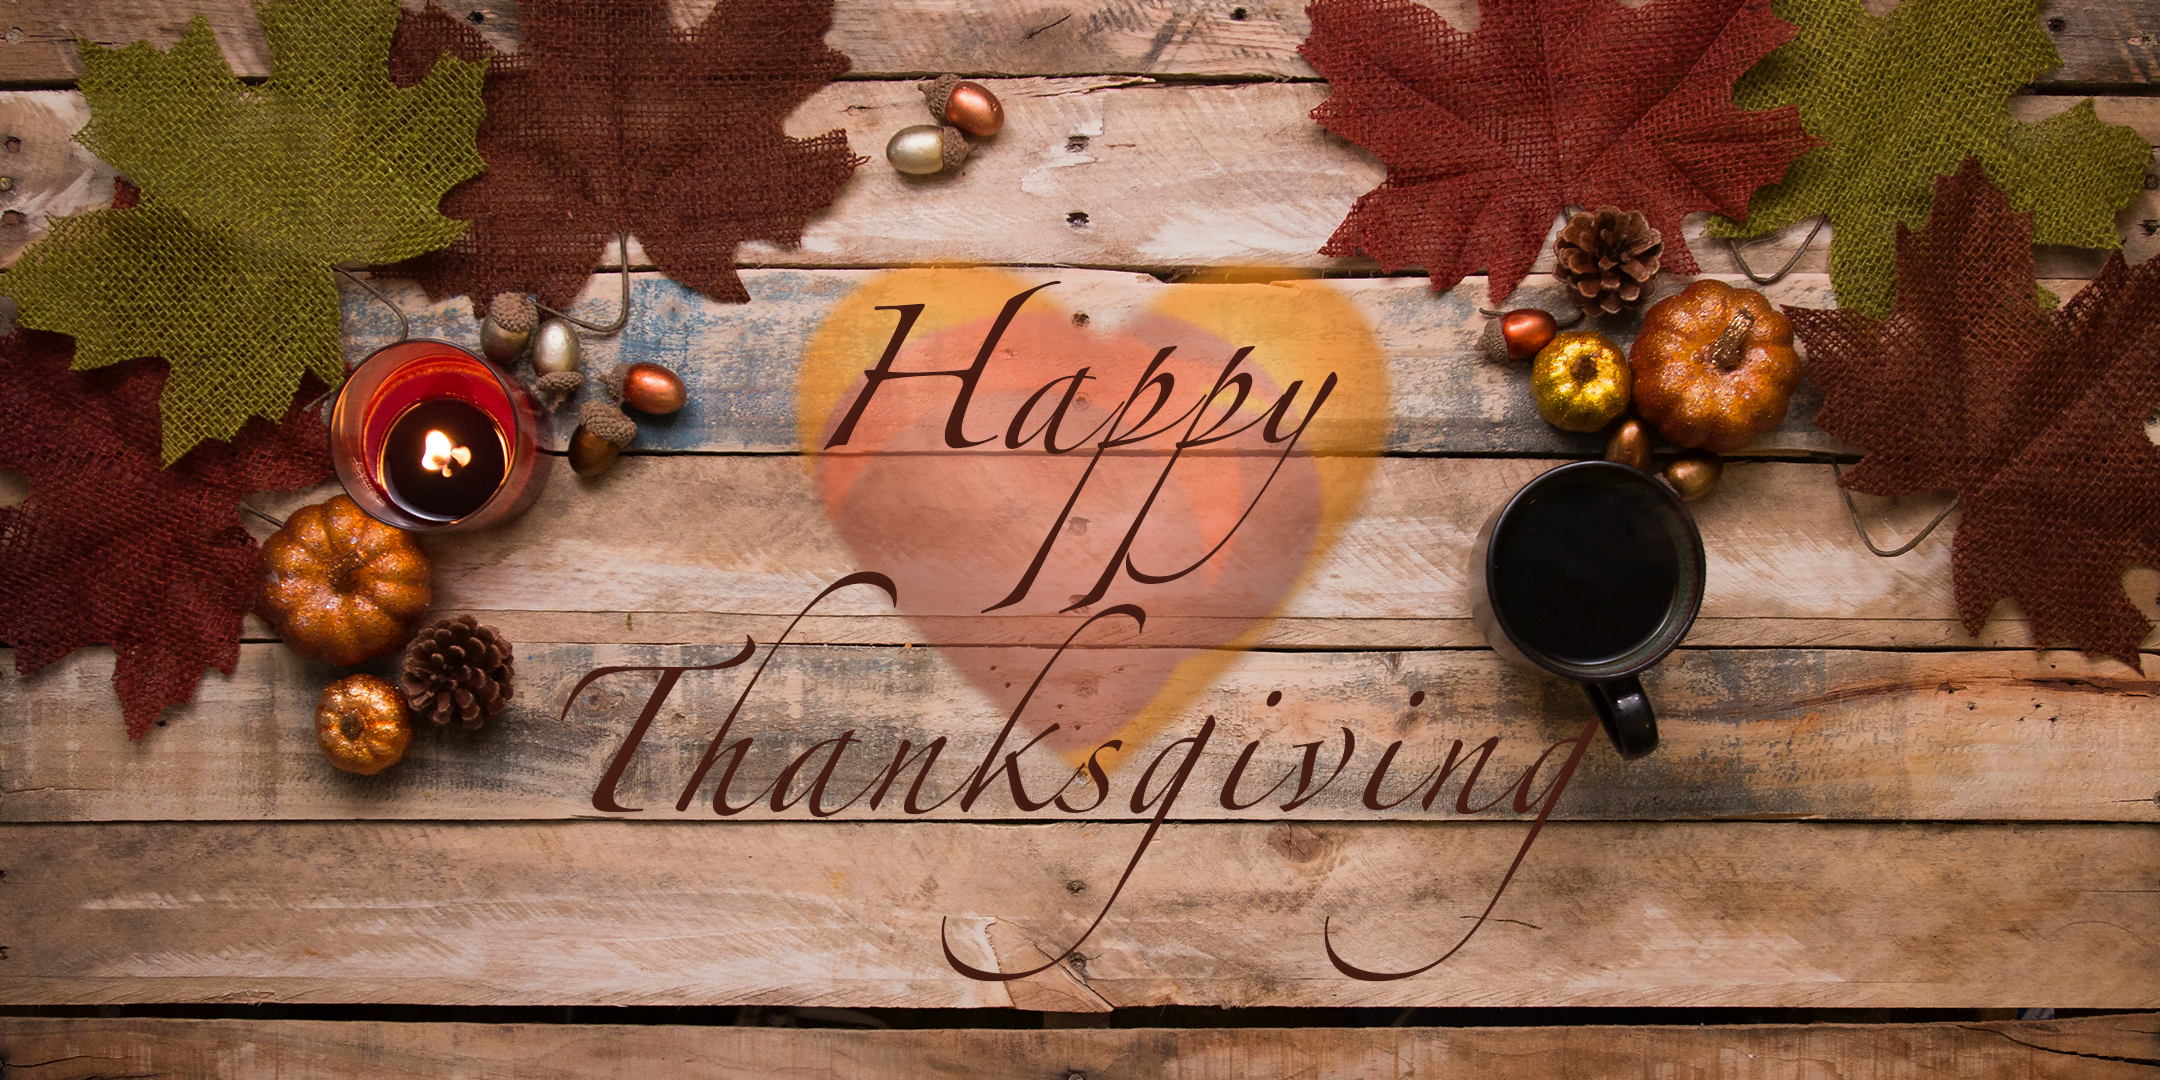 Happy Thanksgiving from everyone at Ludejo